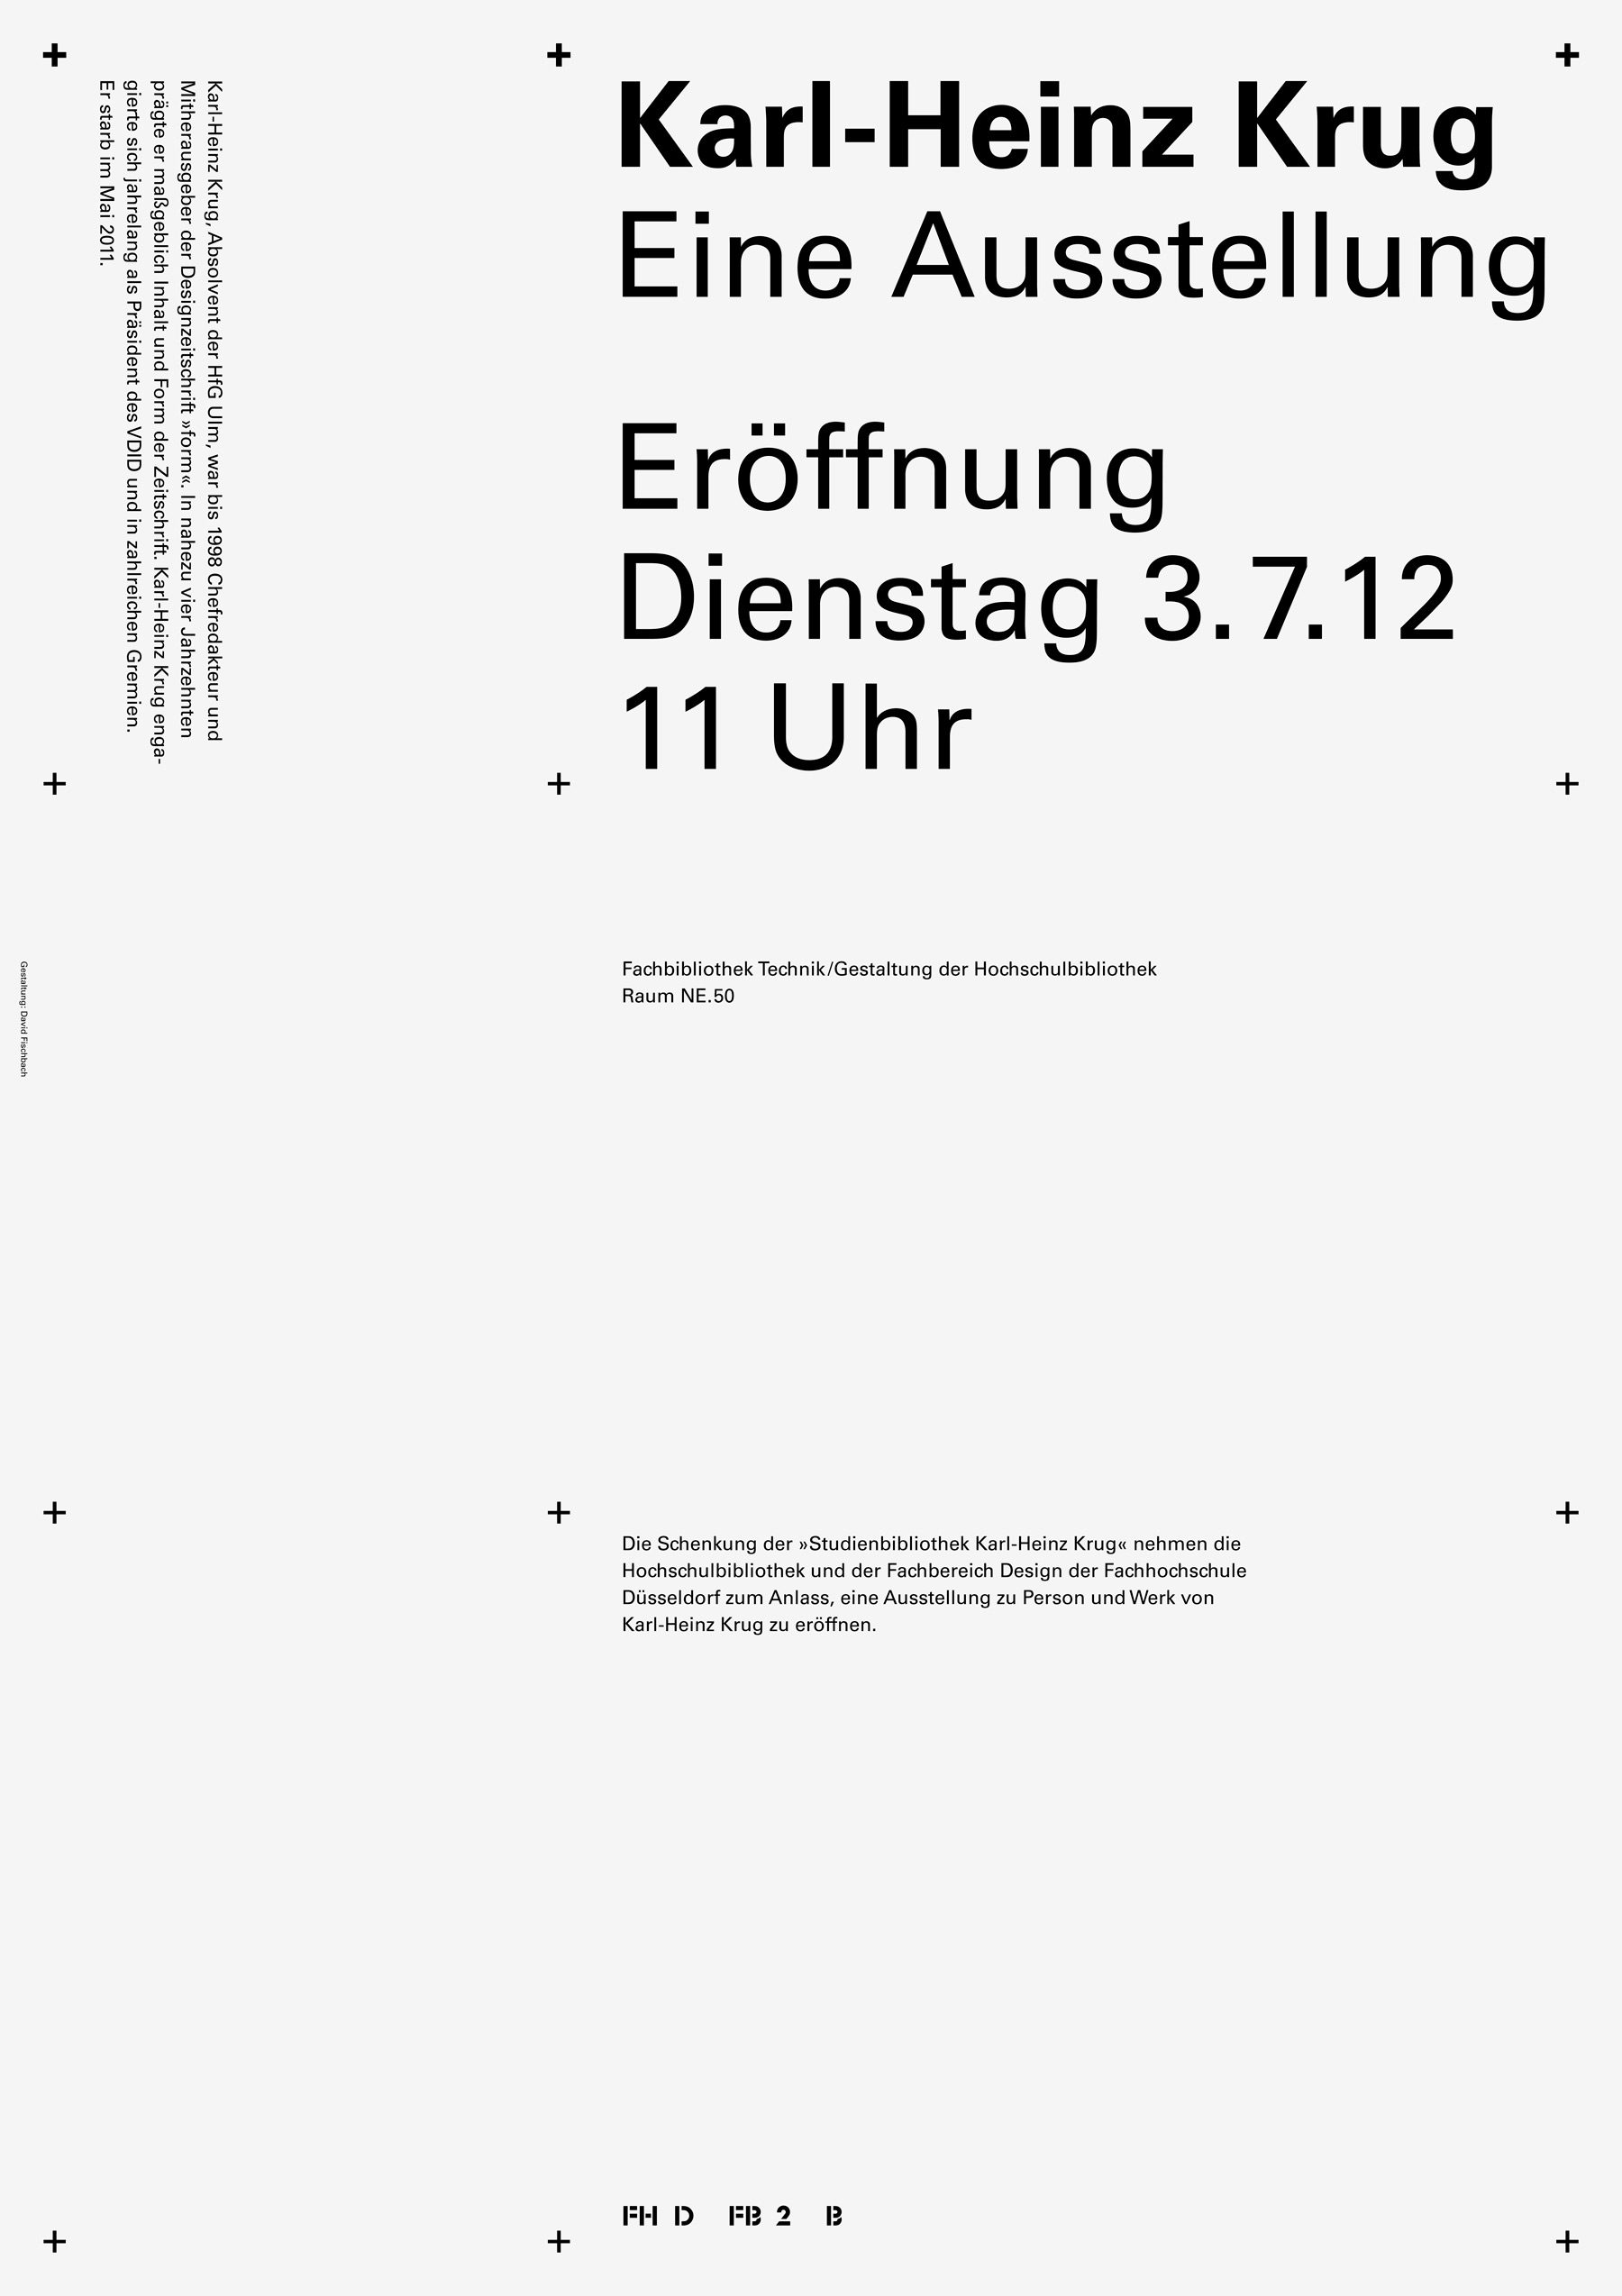 Poster, The Karl-Heinz Krug Research Library, white